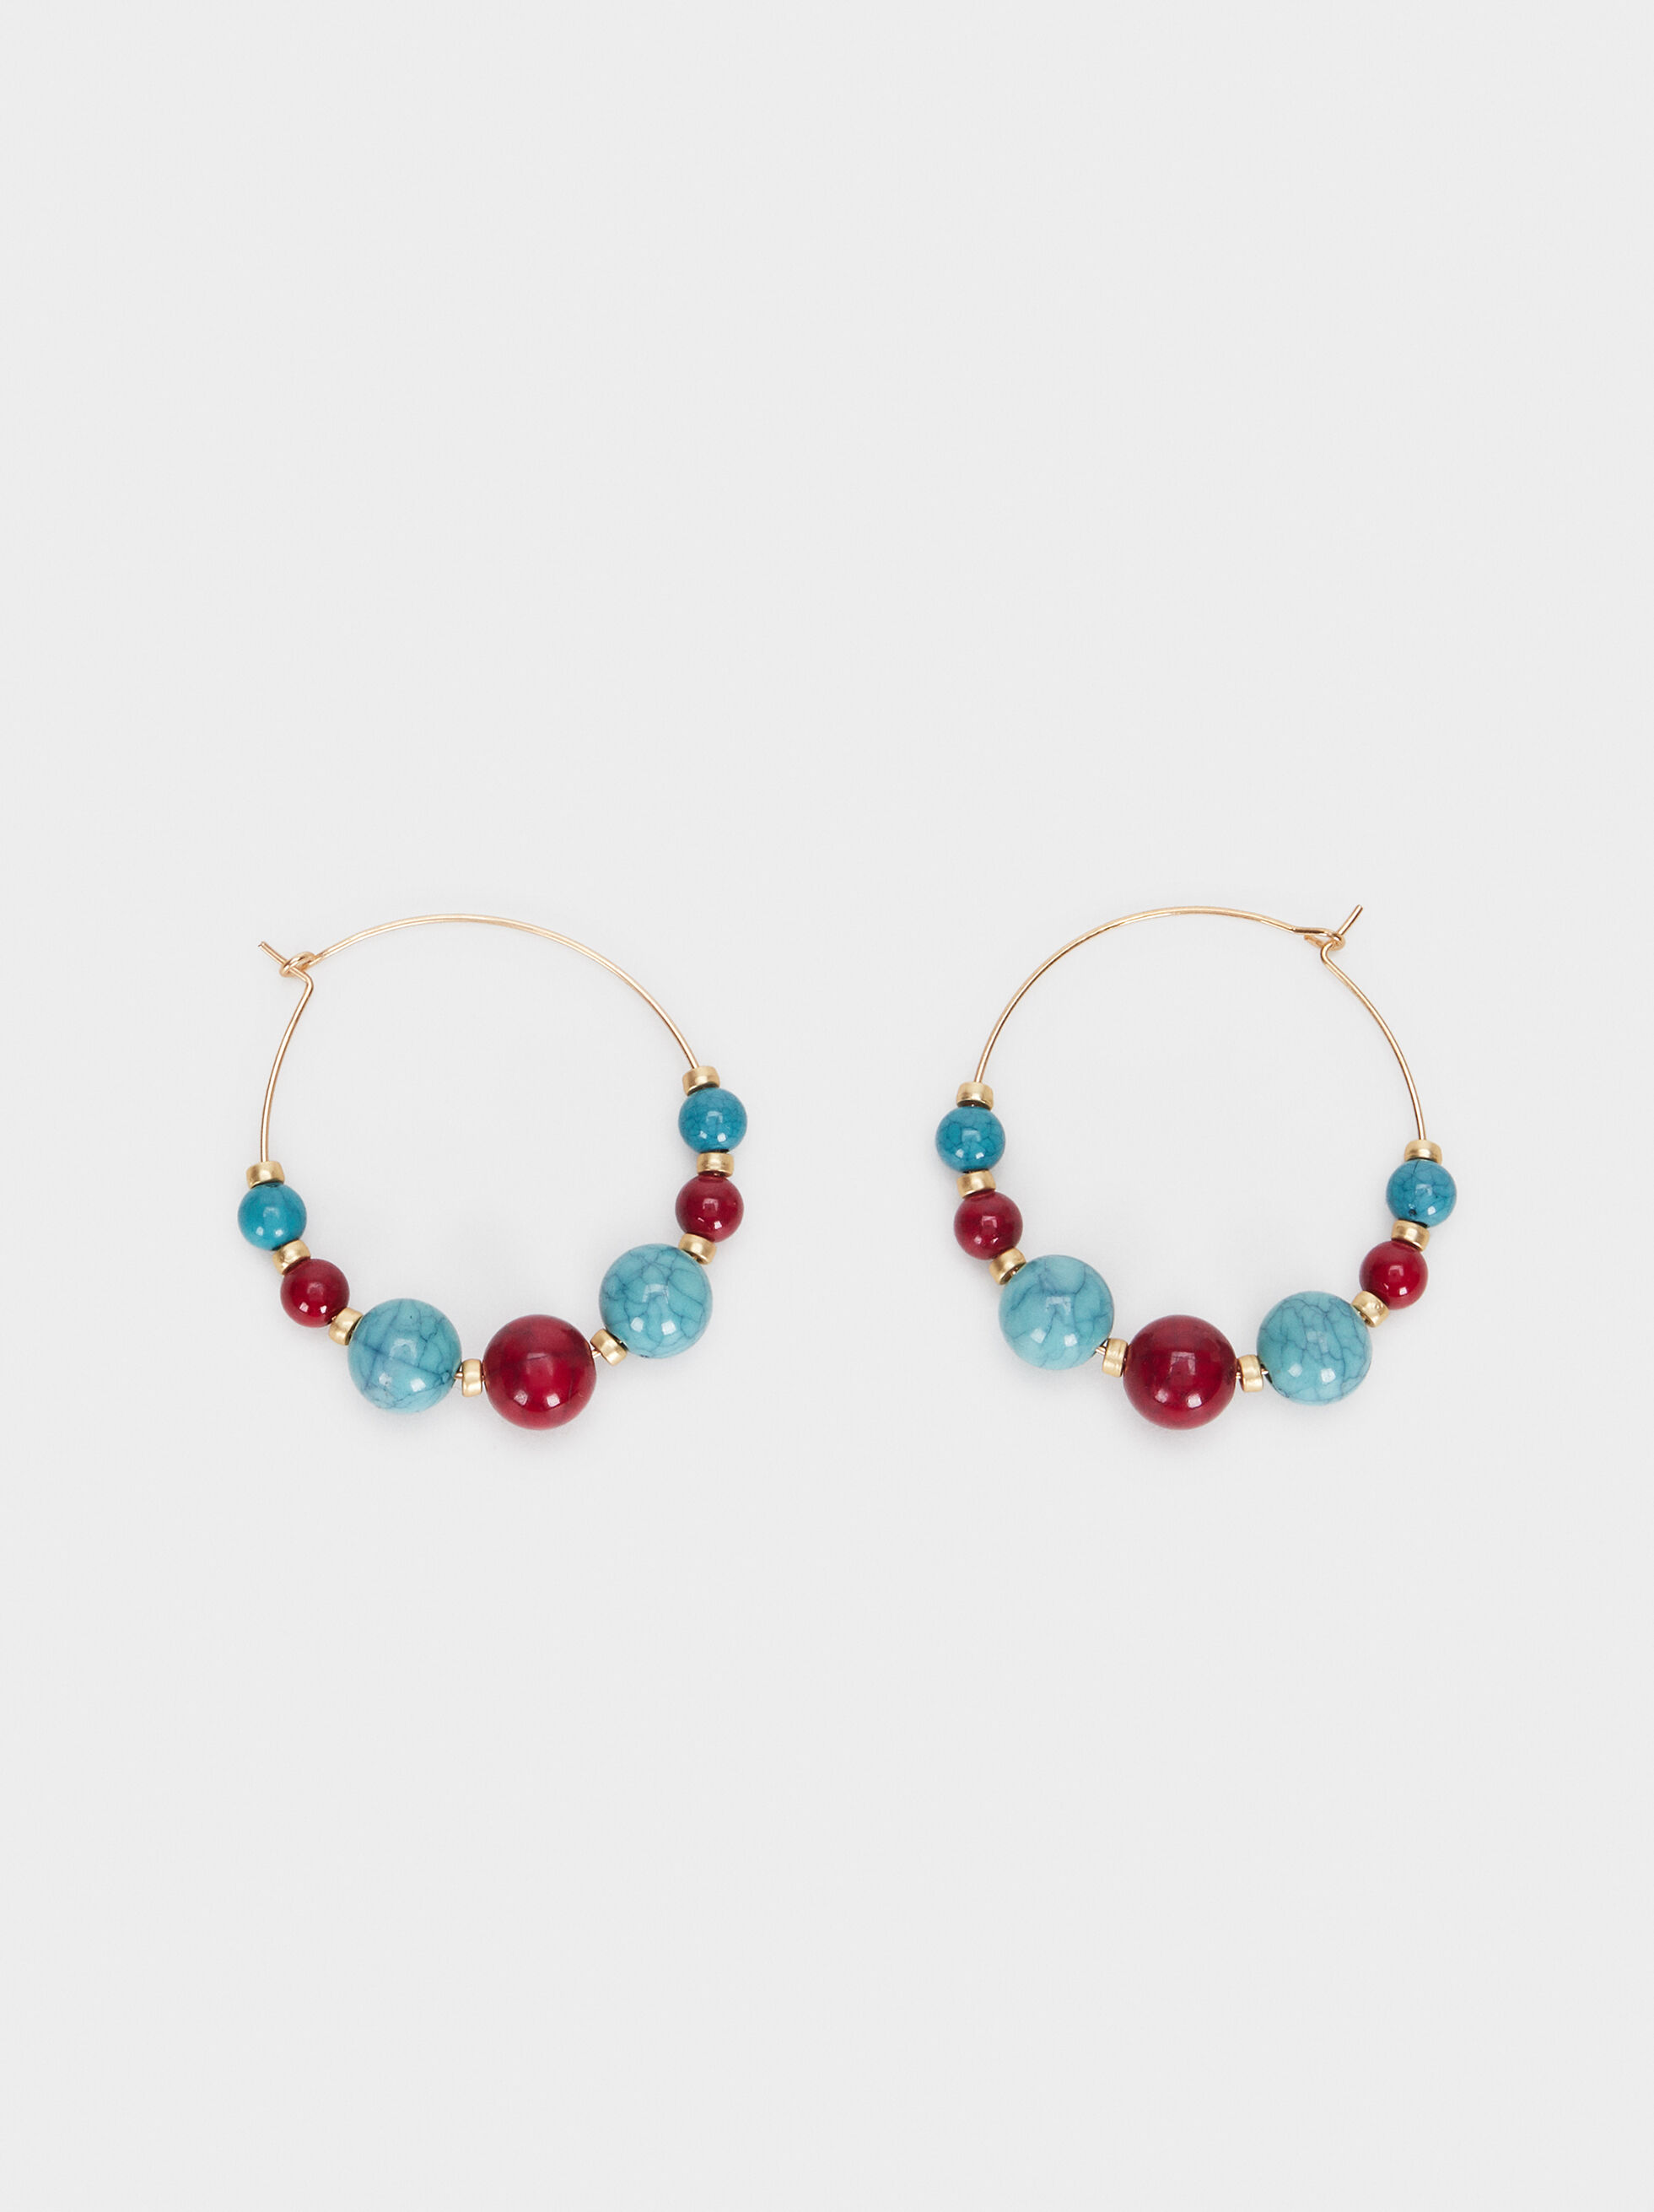 Cherry Blossom Medium Hoop Earrings, Multicolor, hi-res